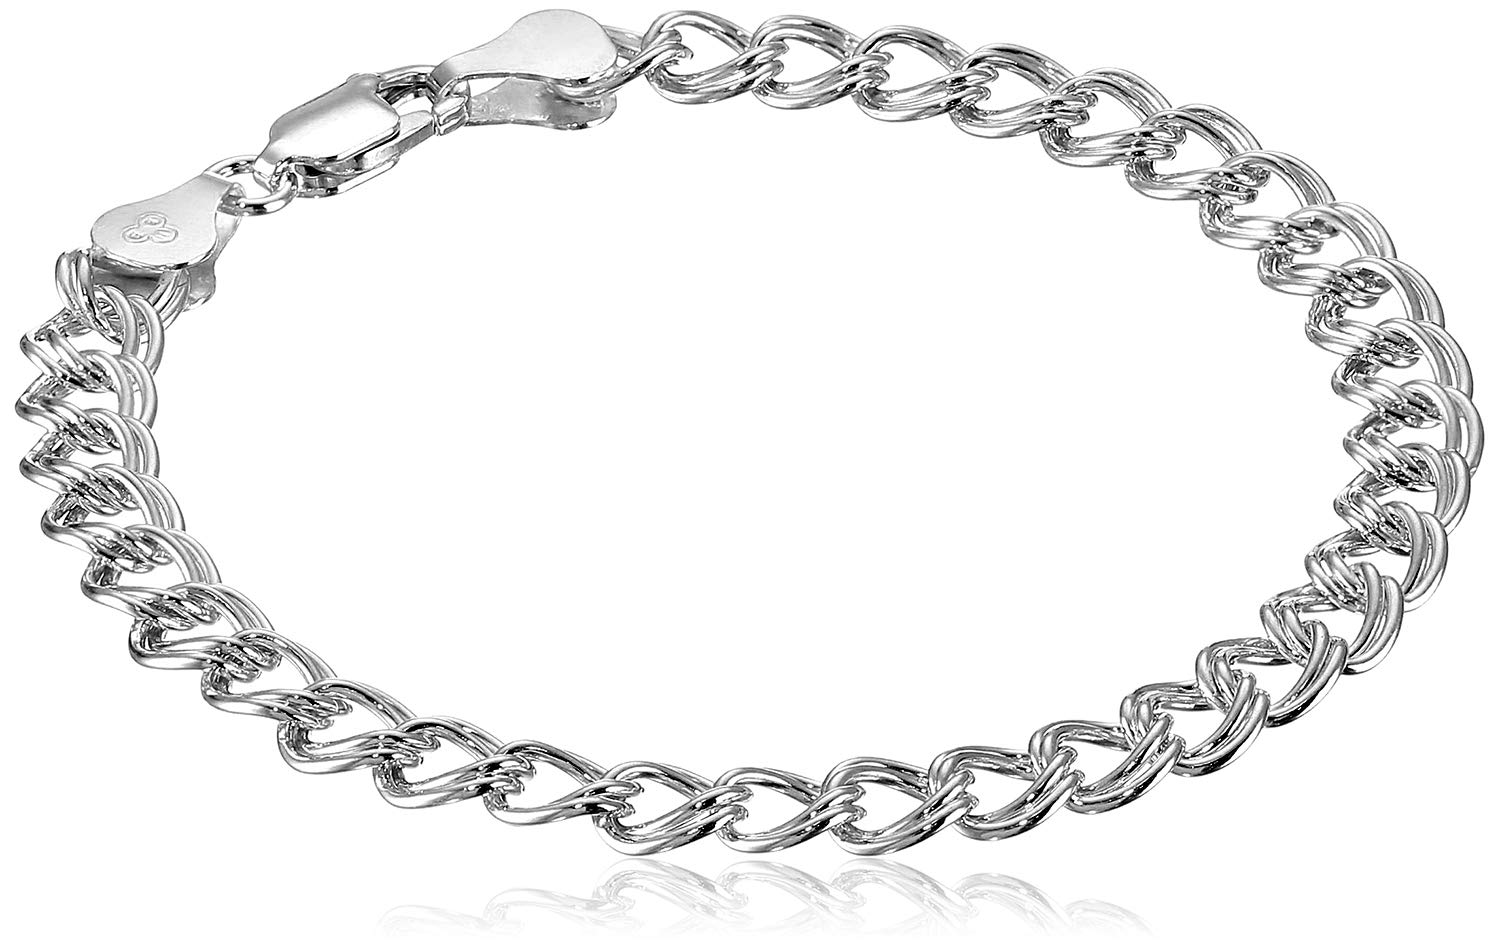 Amazon Essentials Sterling Silver Double-Link Chain Bracelet, 7'' by Amazon Essentials